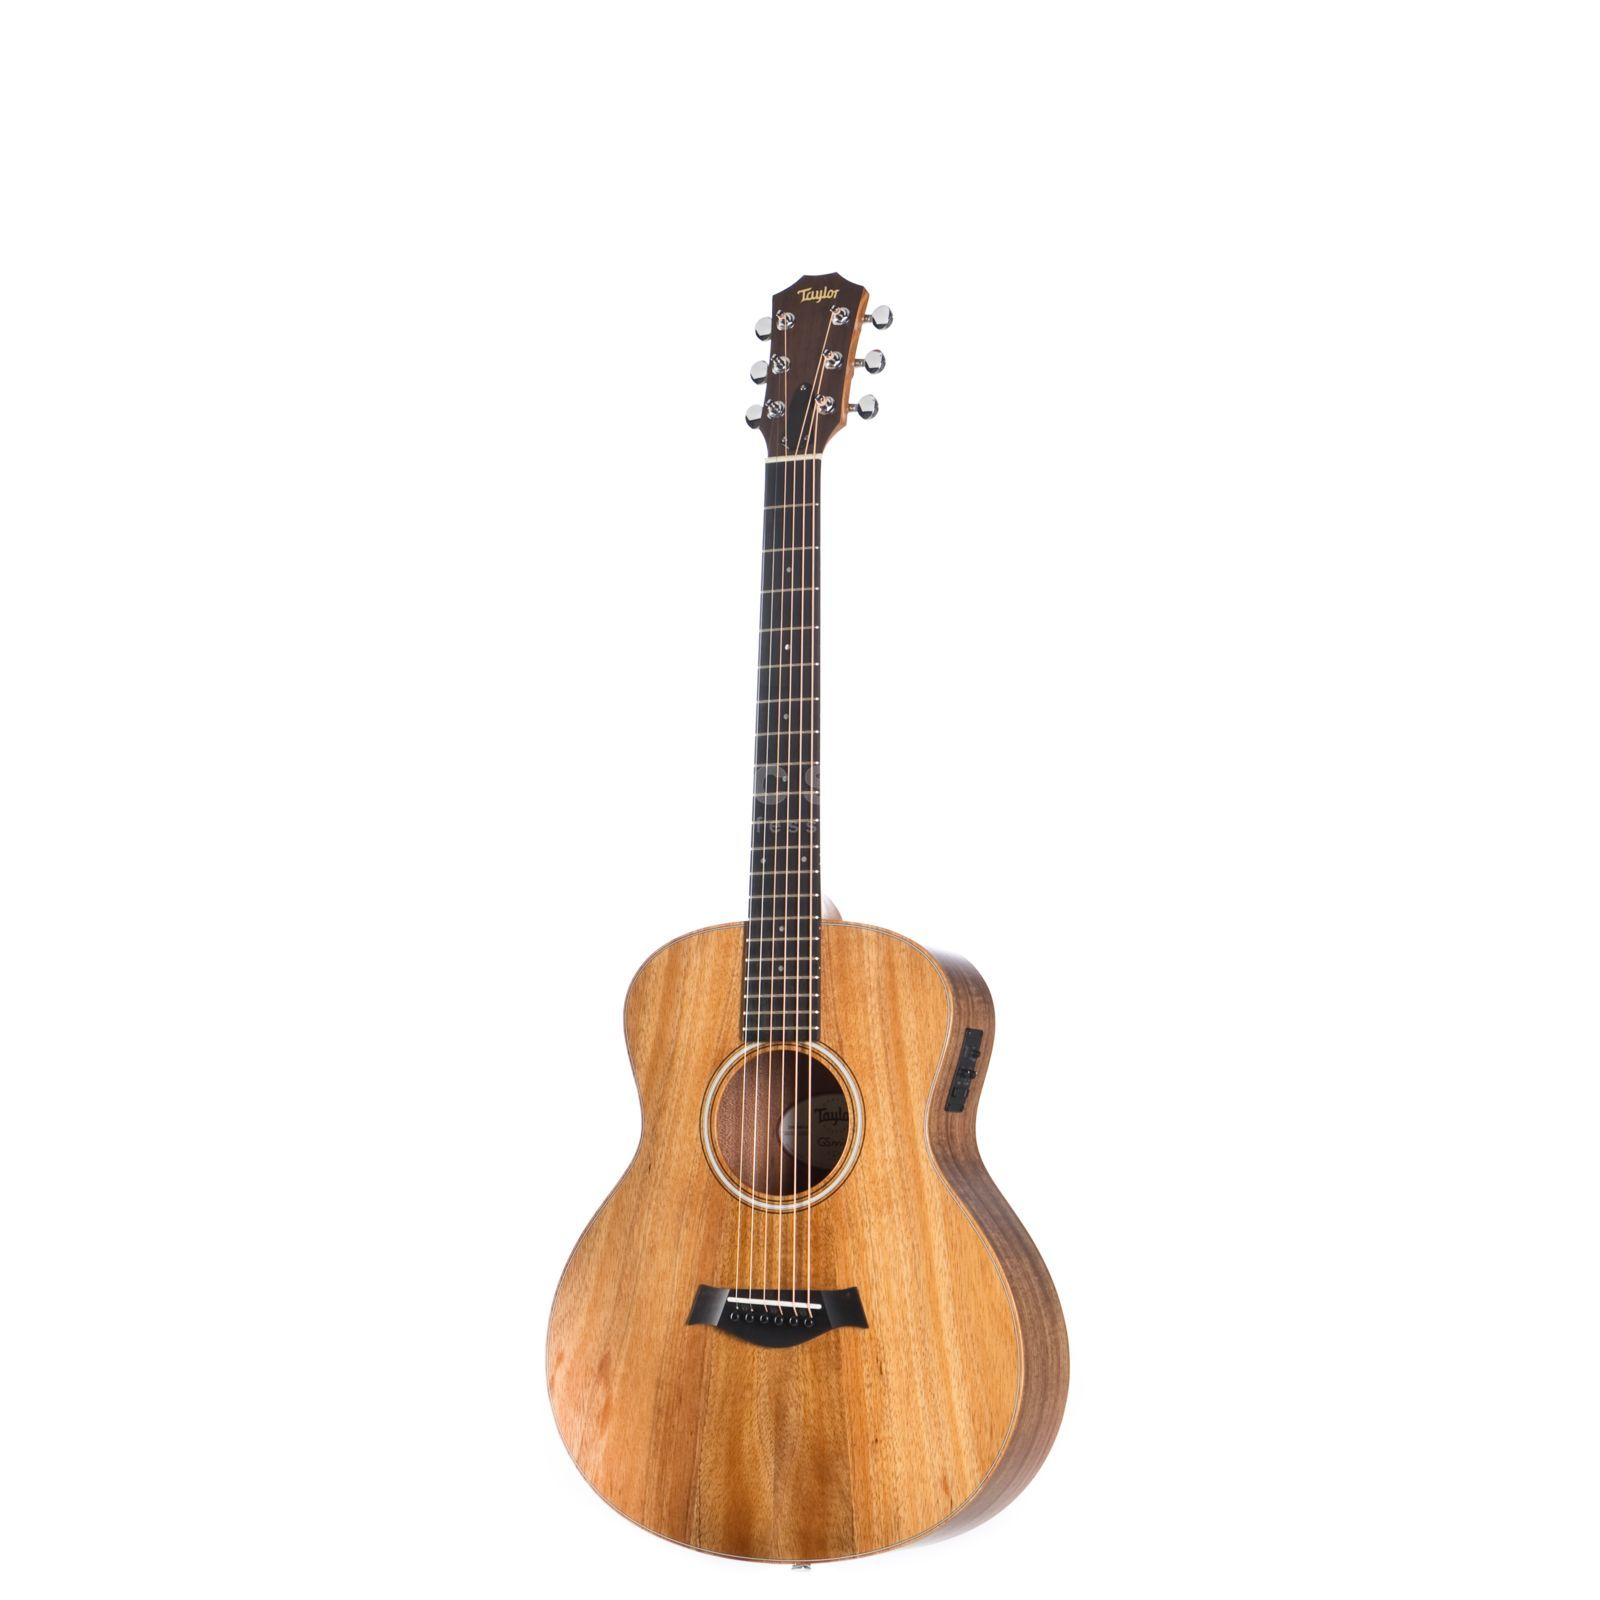 Taylor GS Mini-e Koa Natural Lefthand Изображение товара